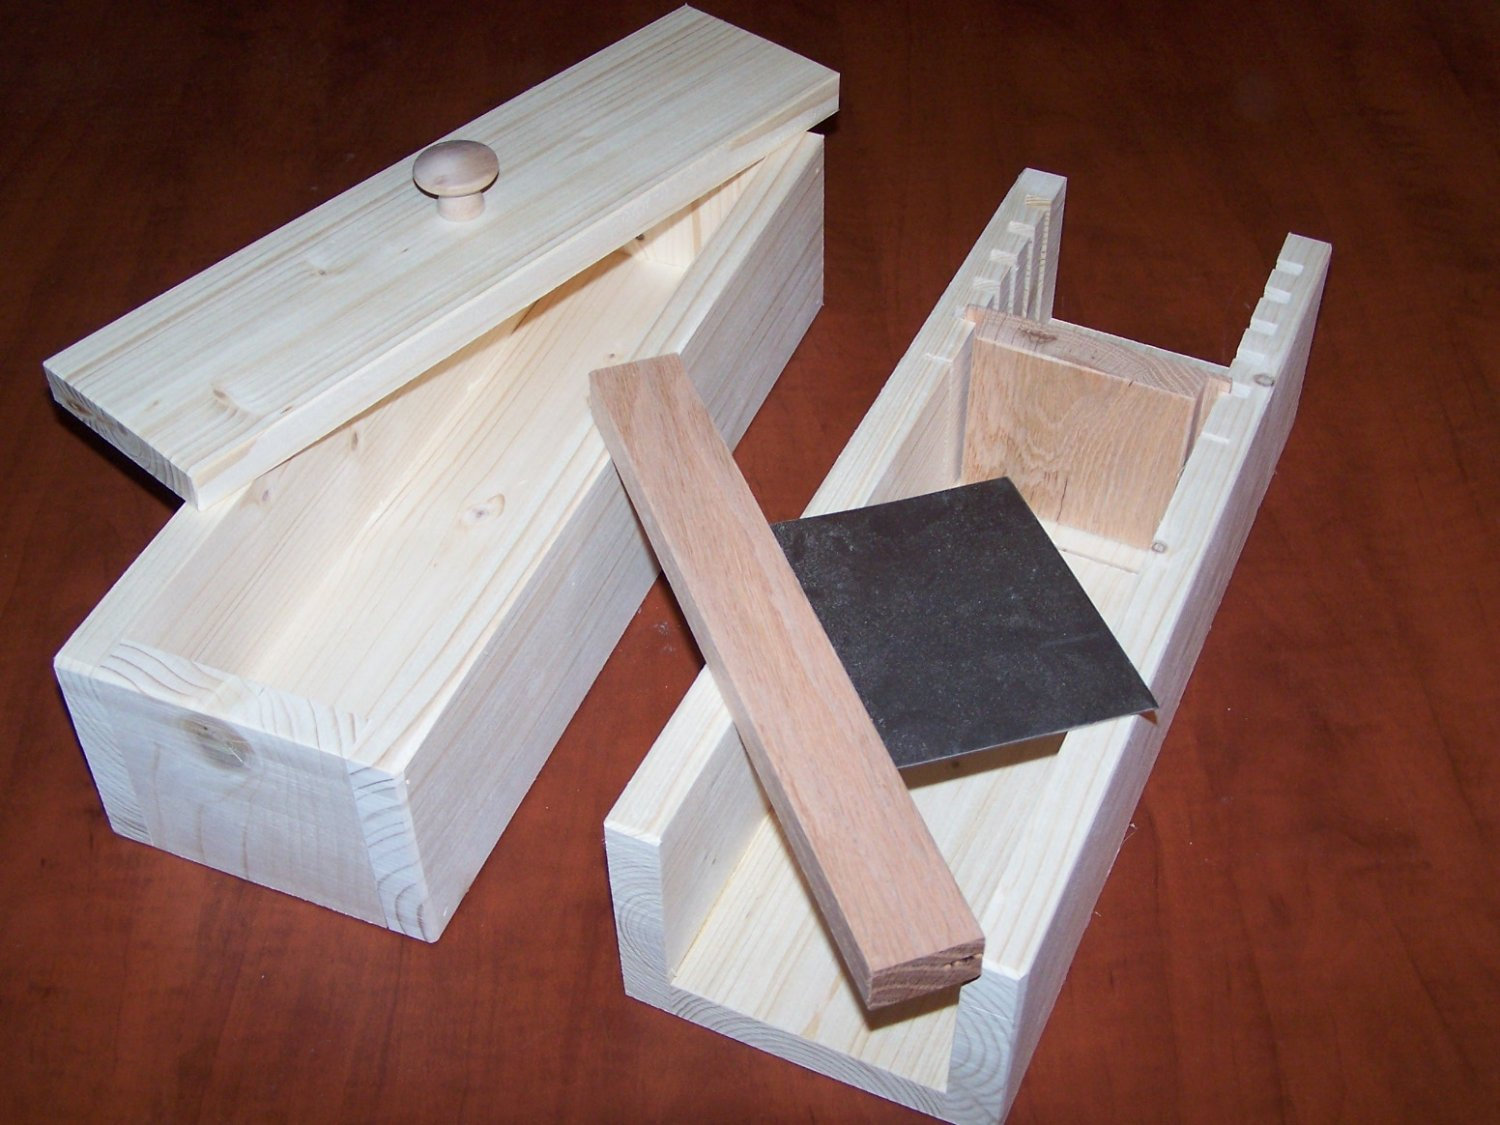 WOODEN SOAP MOLD TO MAKE 4-5 LB LOAF / CUTTER SLICER